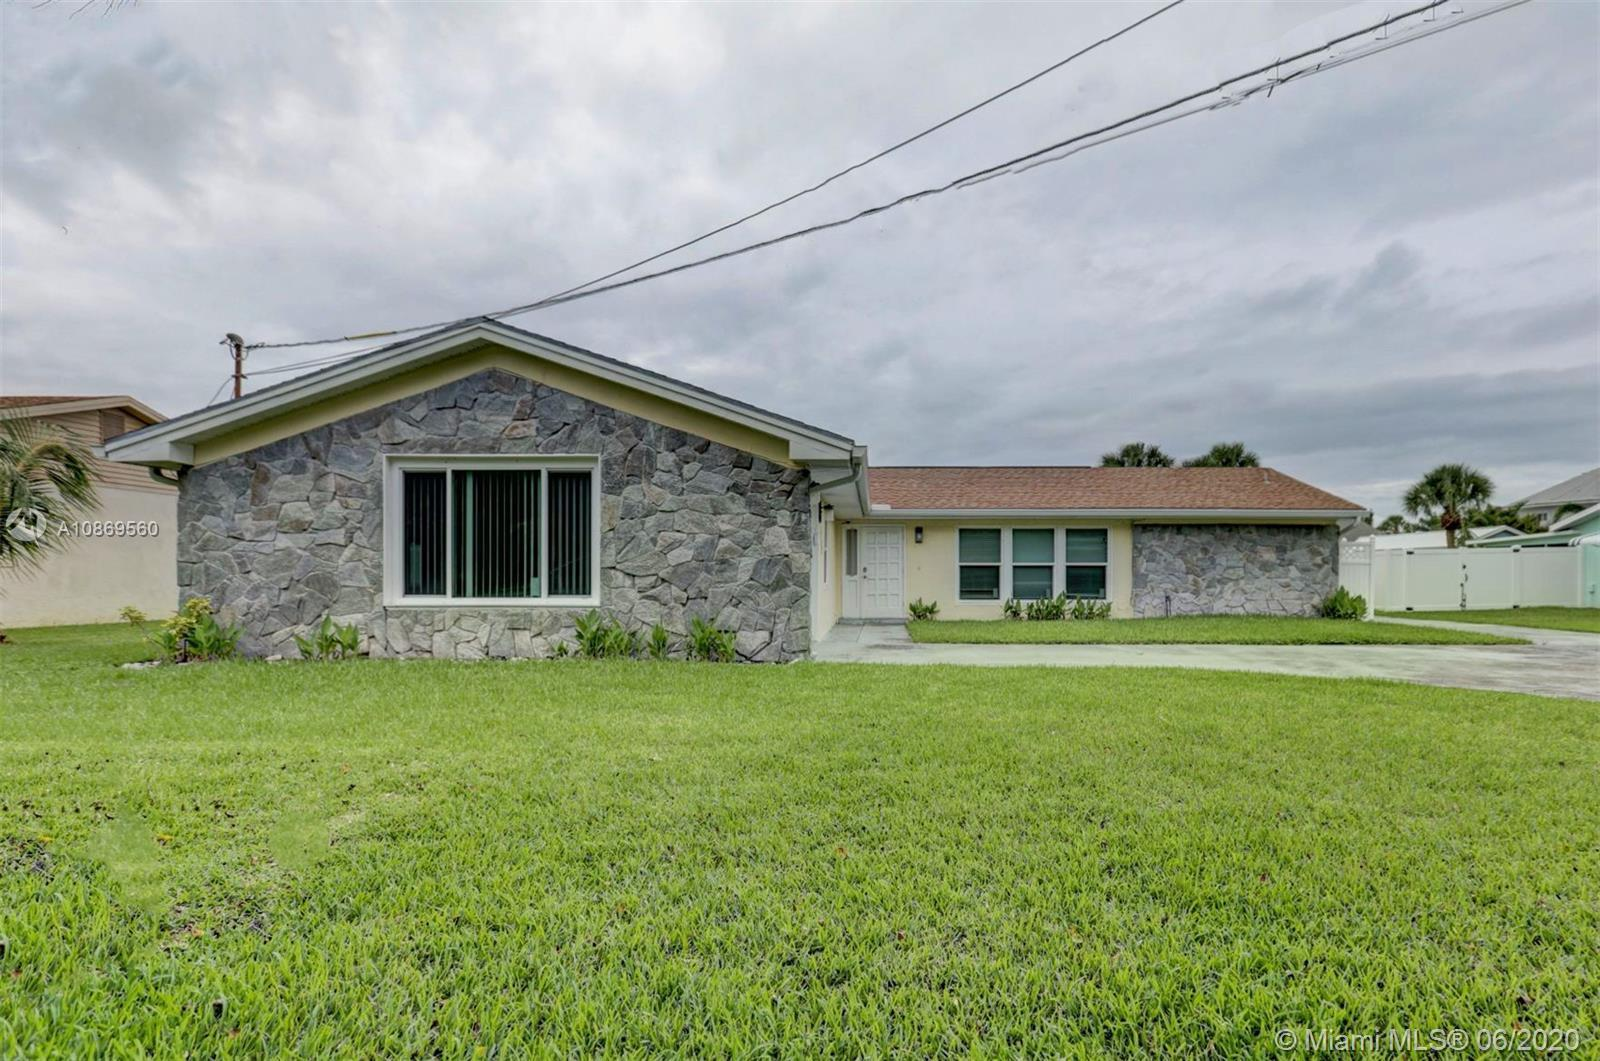 Immaculate, 3 bedroom, 2 bath home, + Large Office (easily turned into 4th bedroom) just a quick 3-m